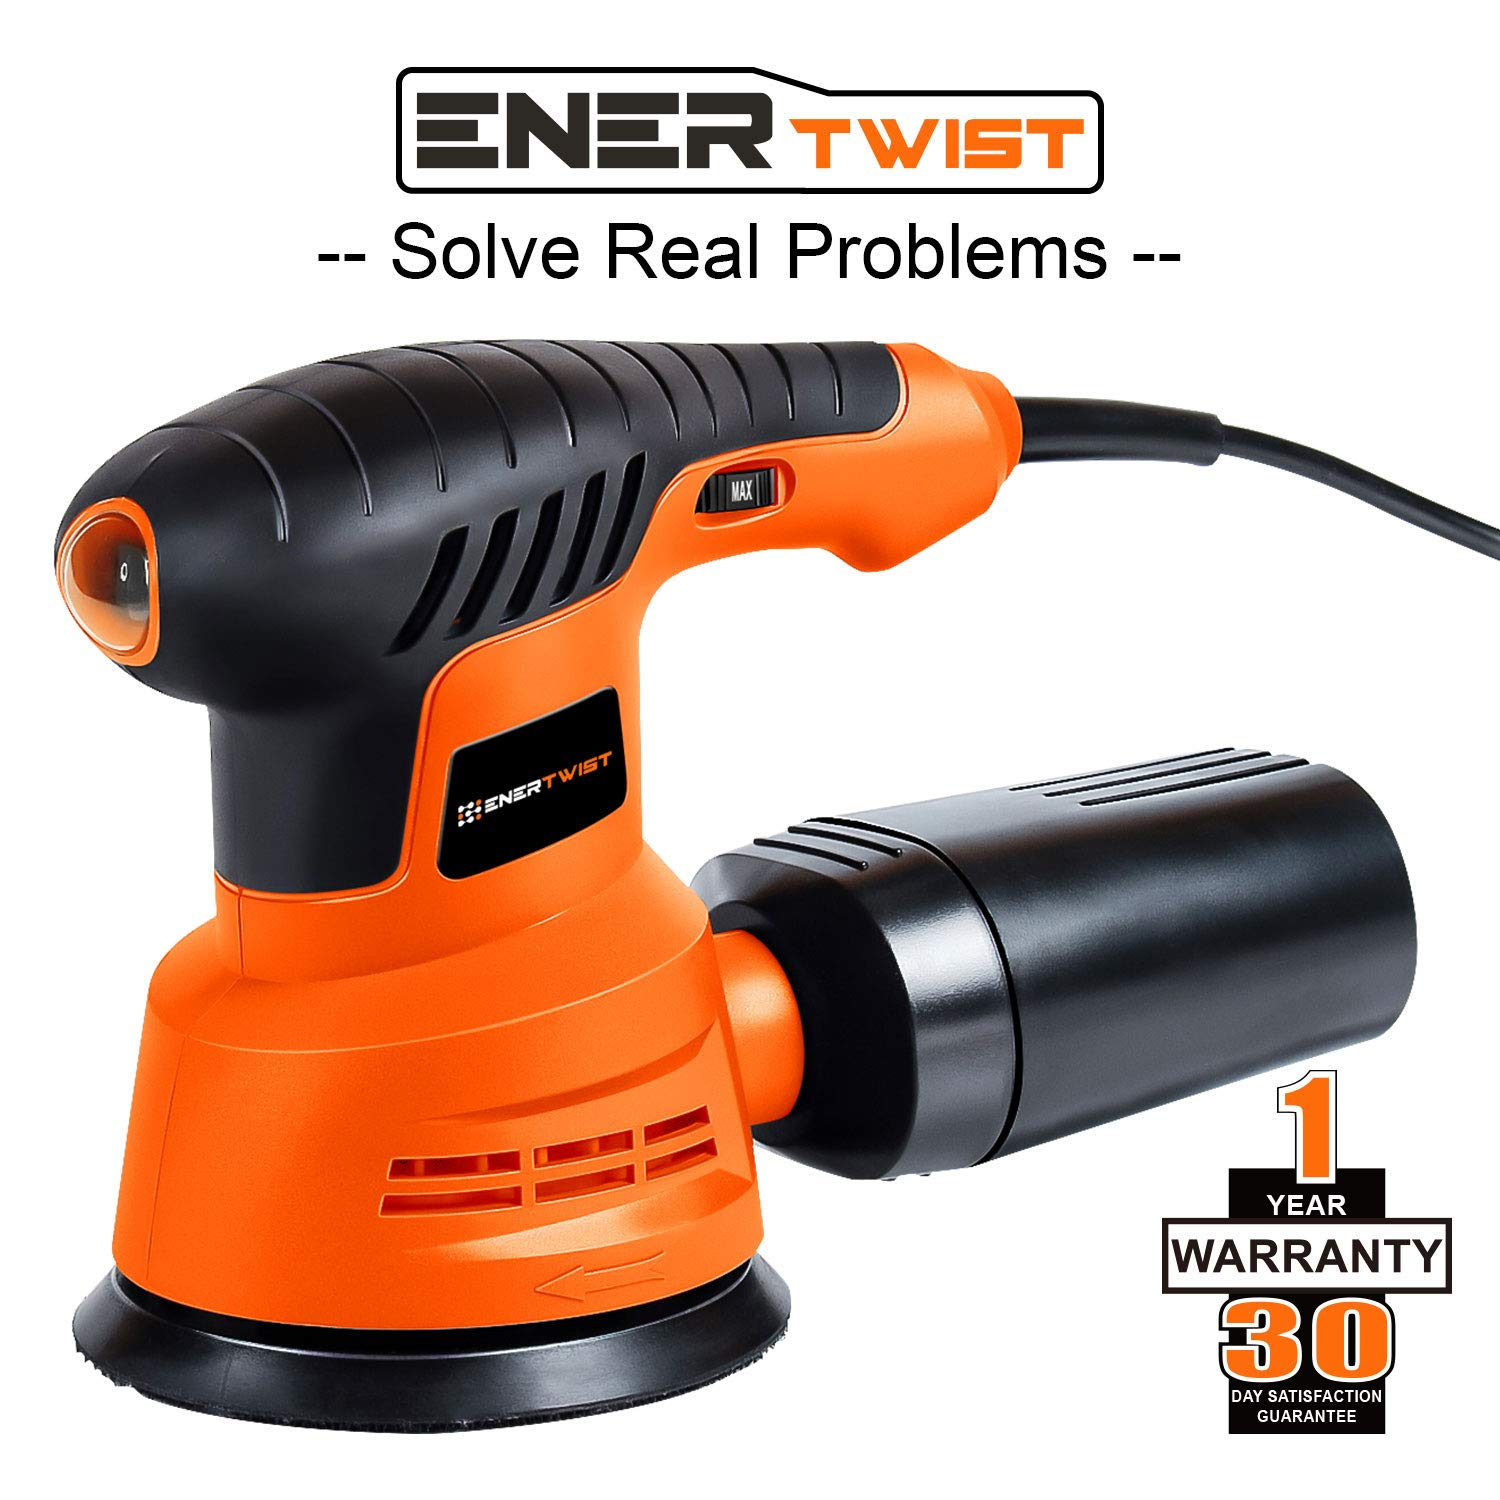 ENERTWIST ET-OS-250 featured image 8